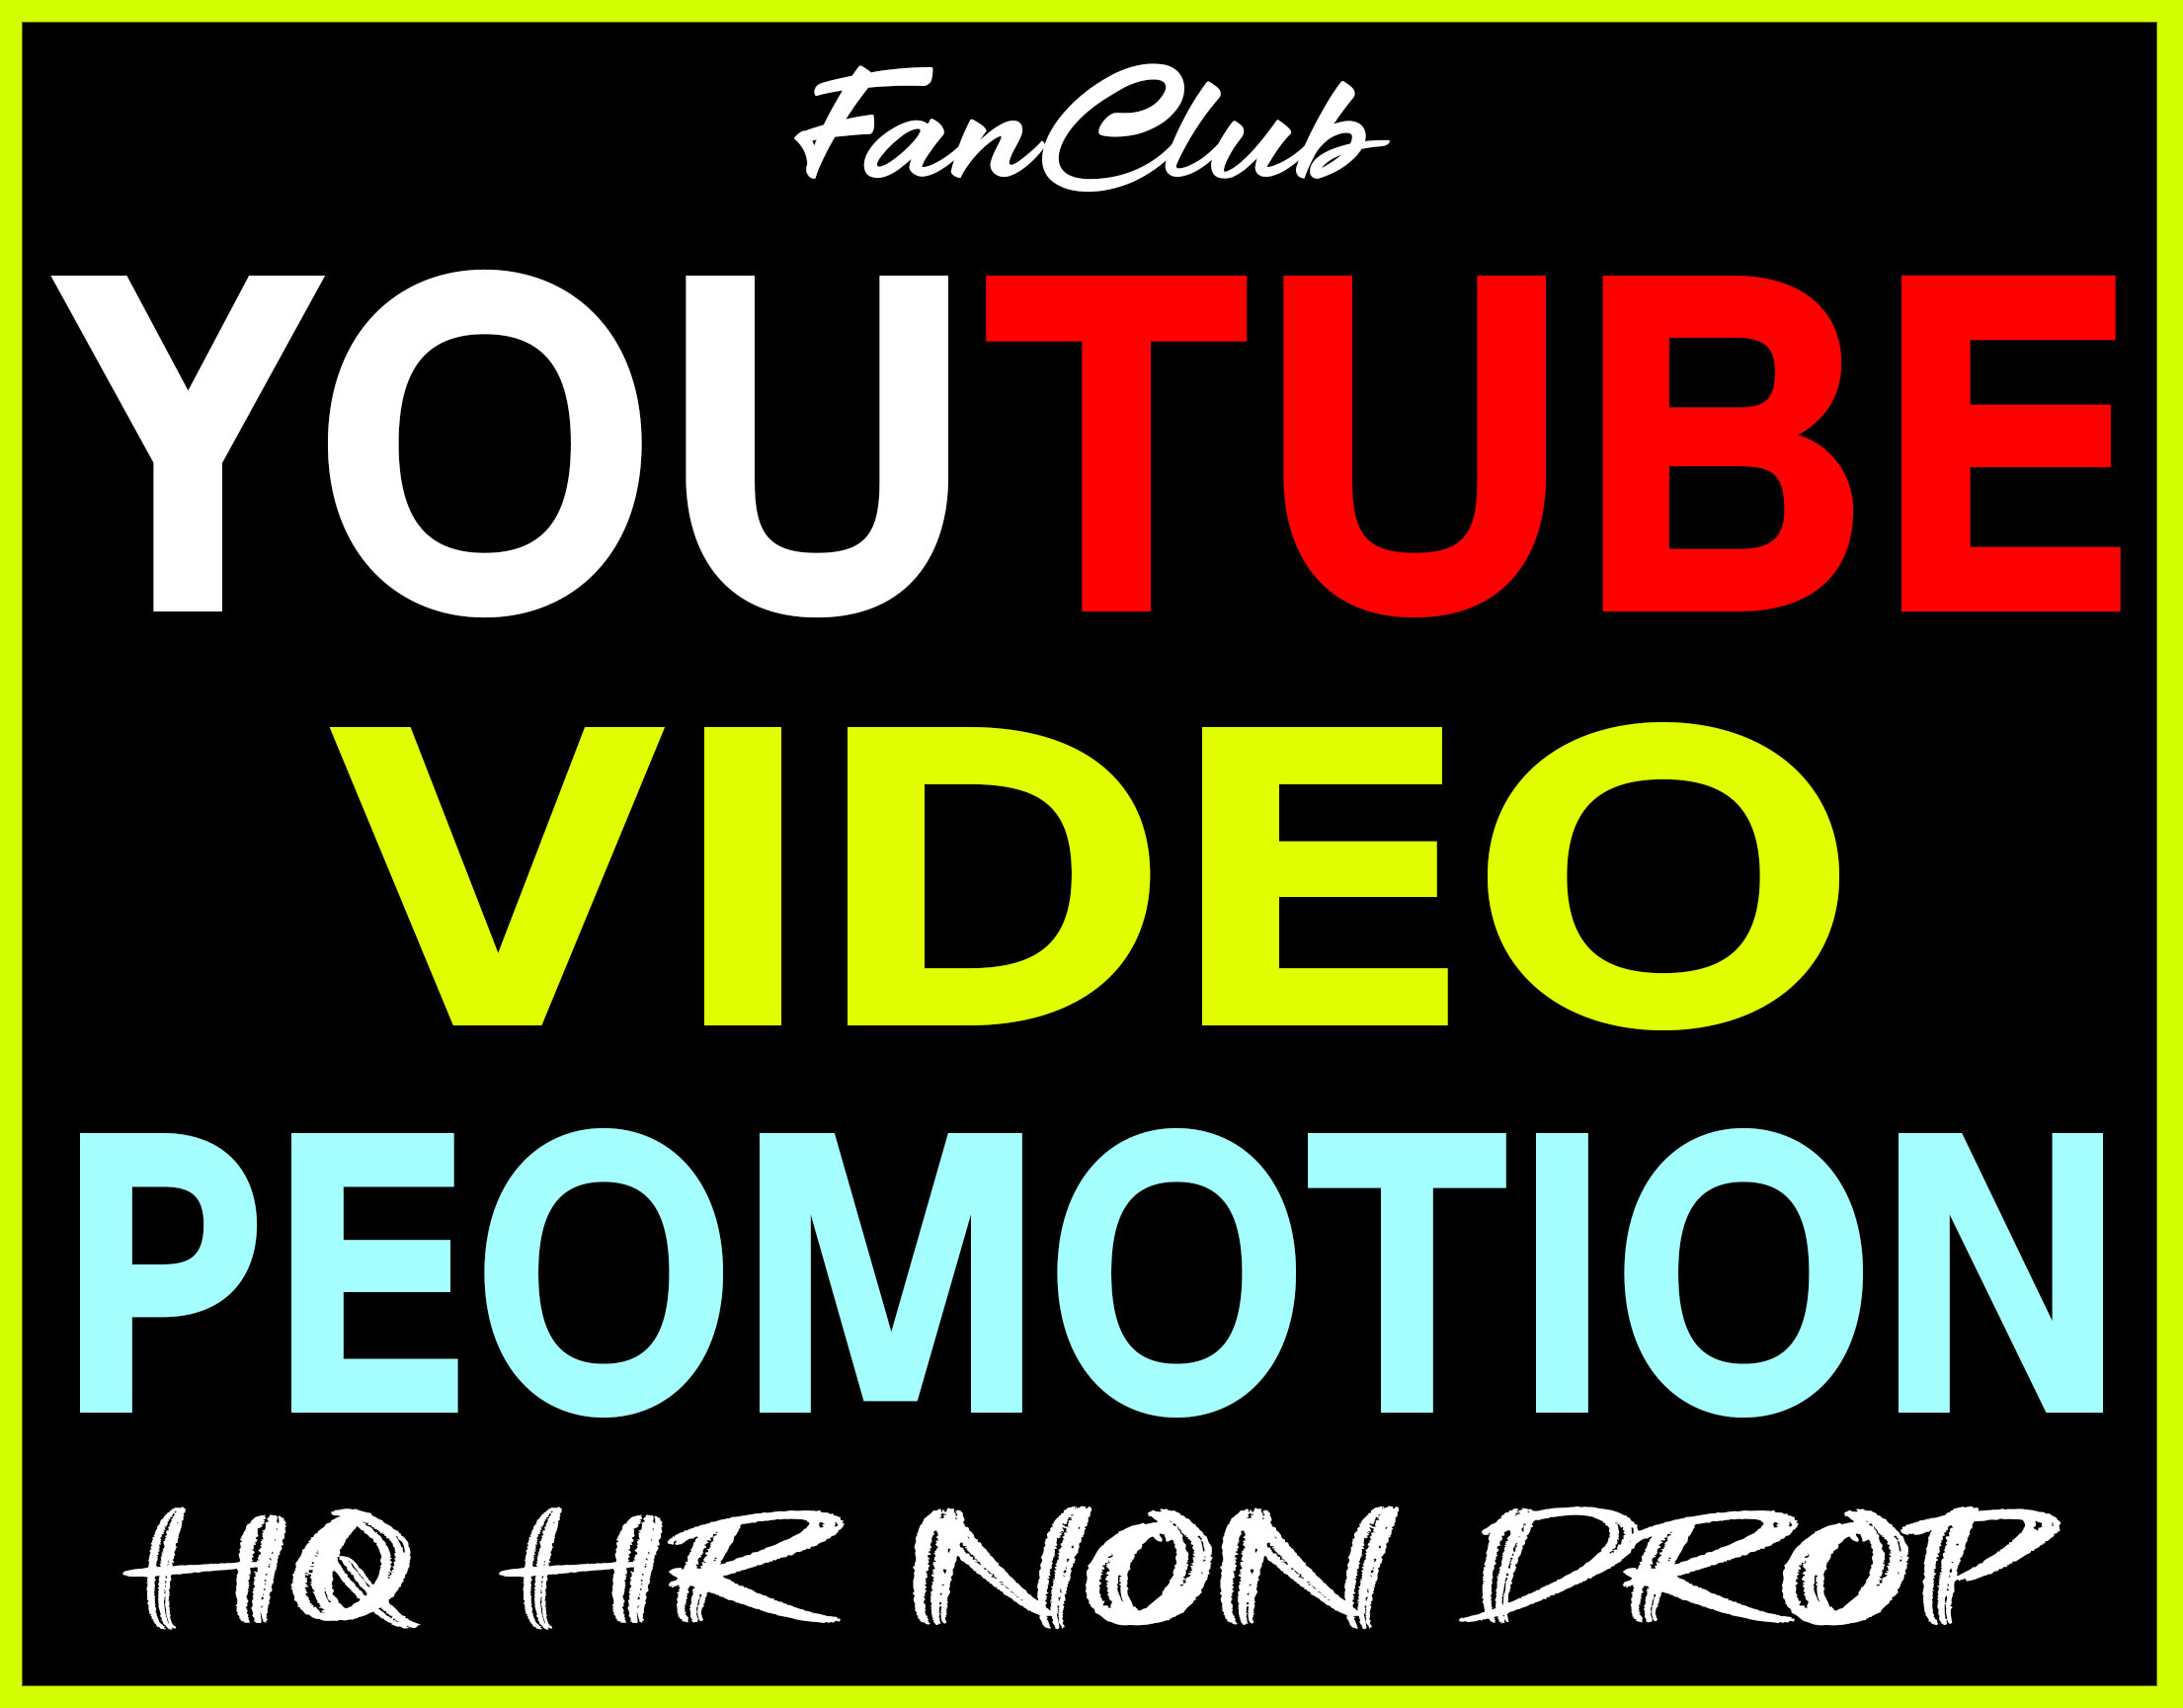 Fast YouTube Video Promotion & Marketing Good For Ranking